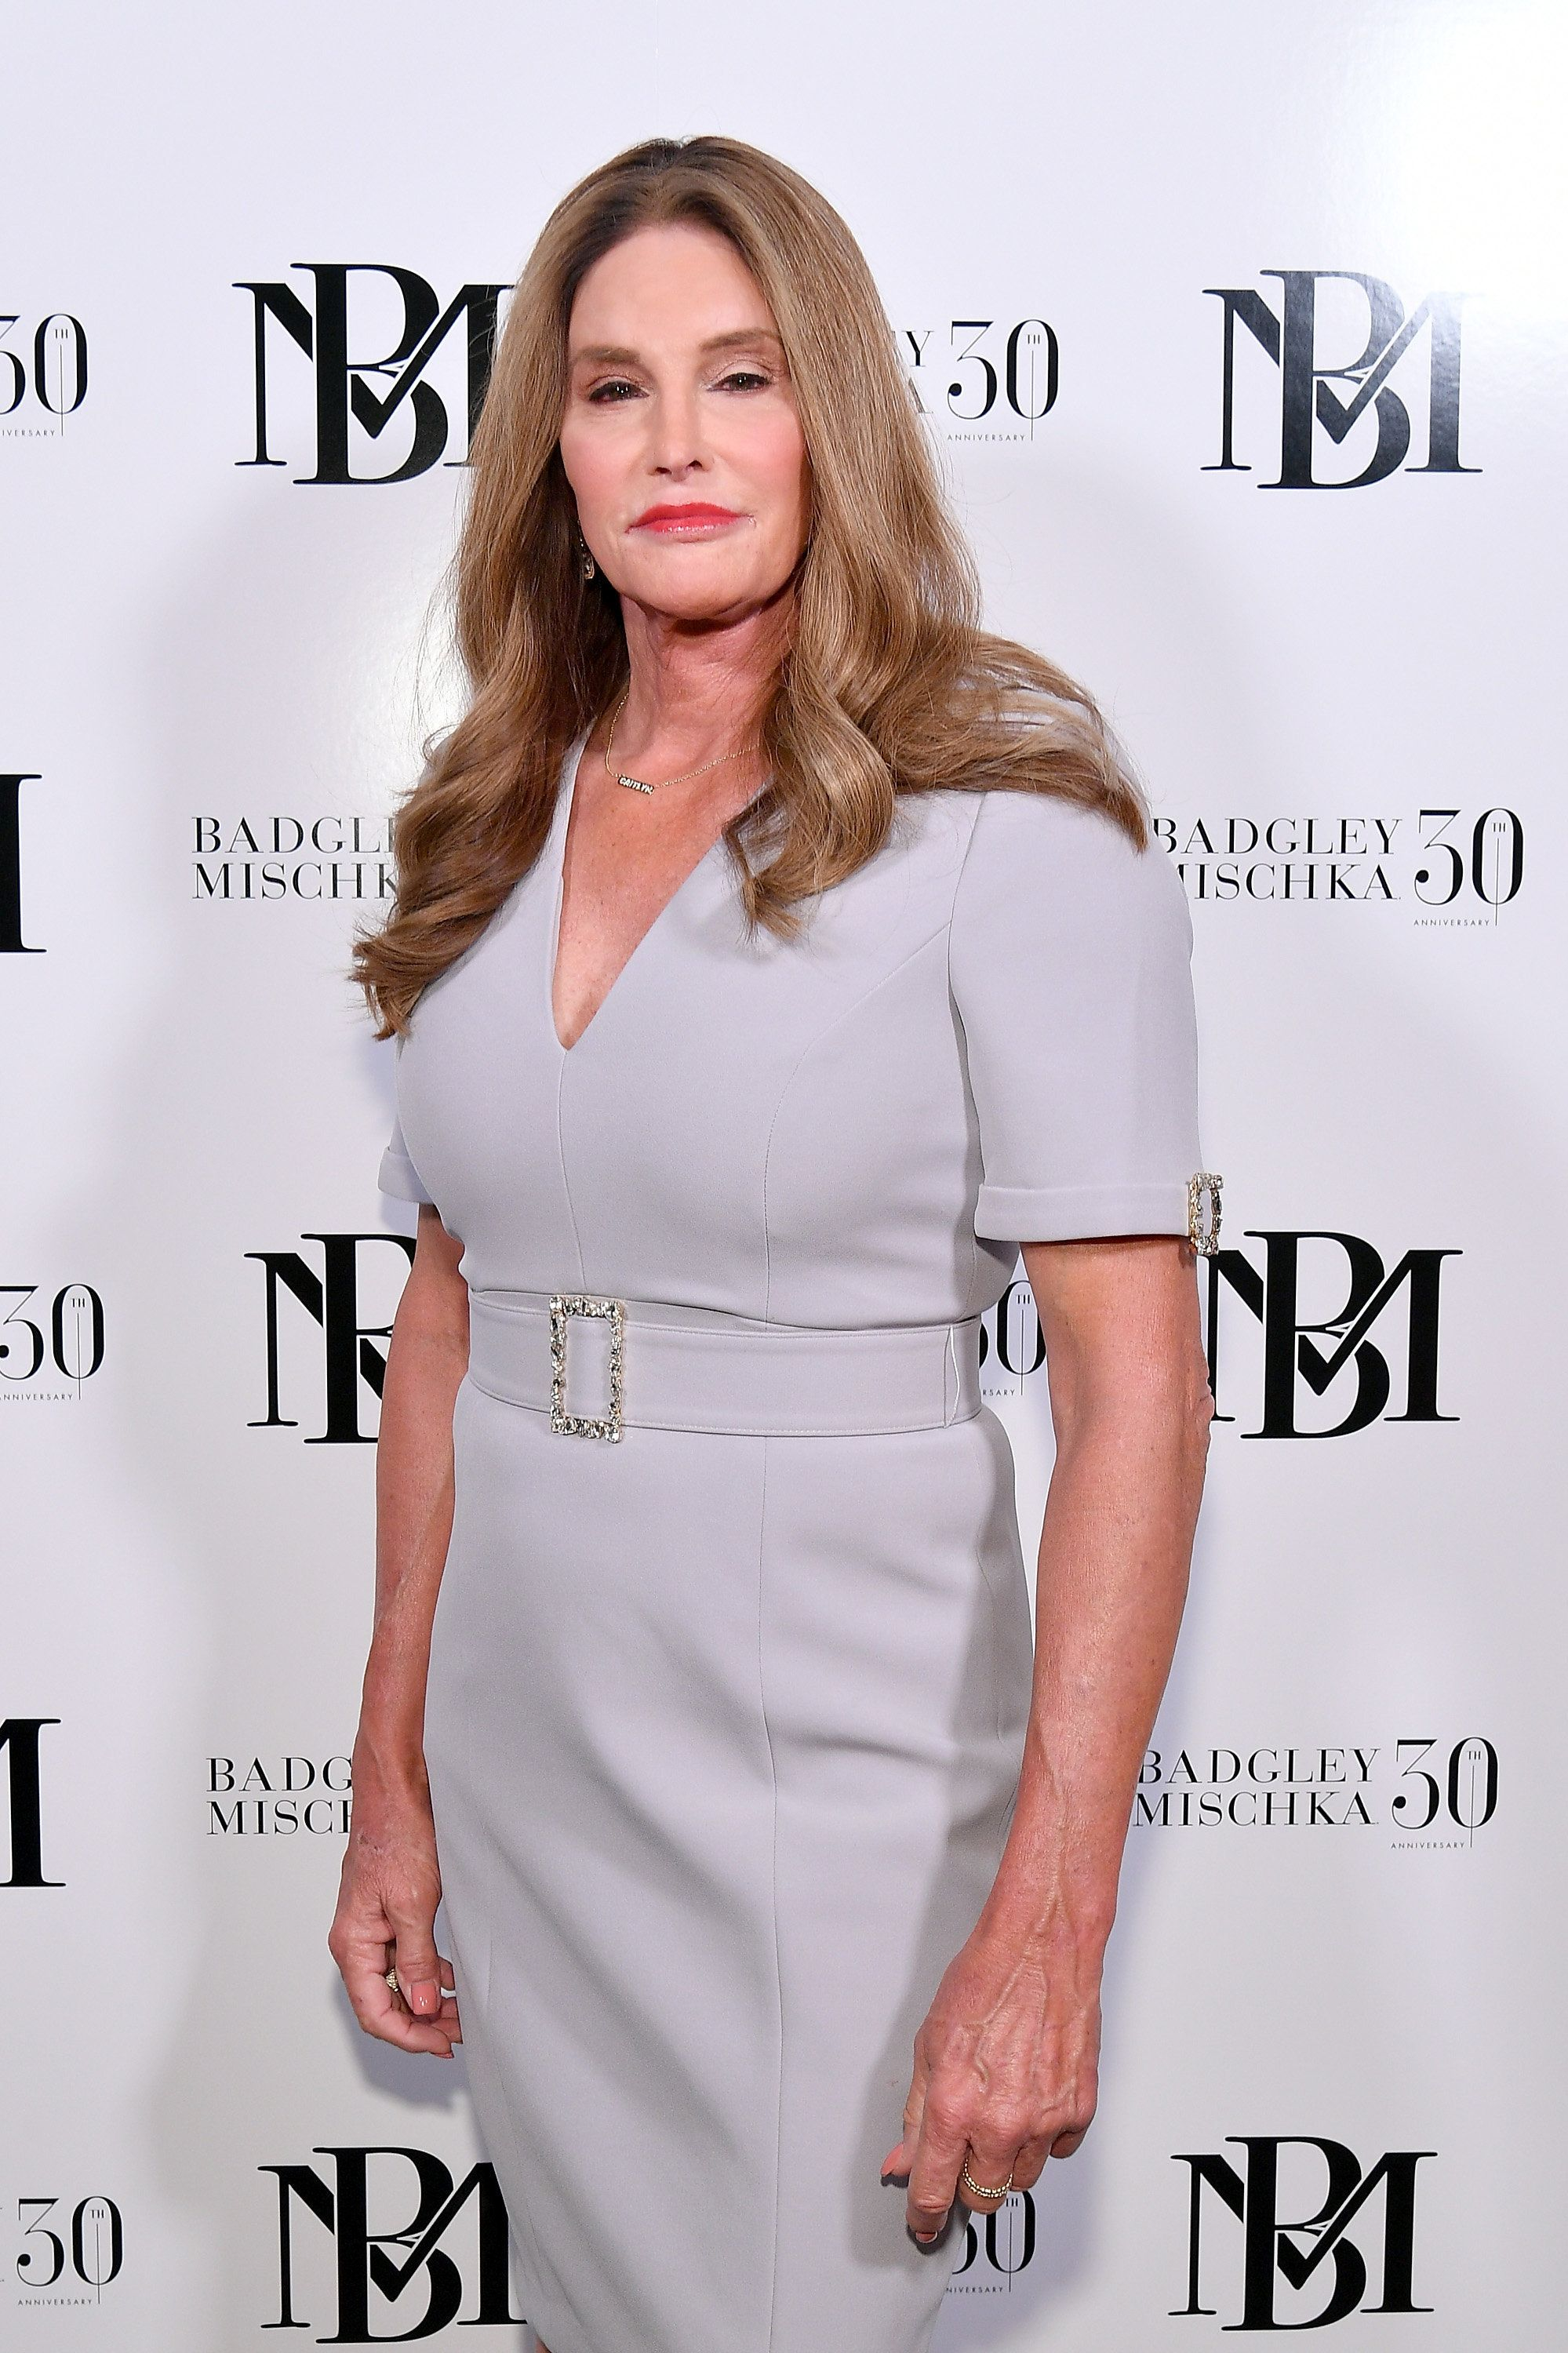 A proposed policy change by the Trump administration on the legal definition of gender has caused Caitlyn Jenner to detail he